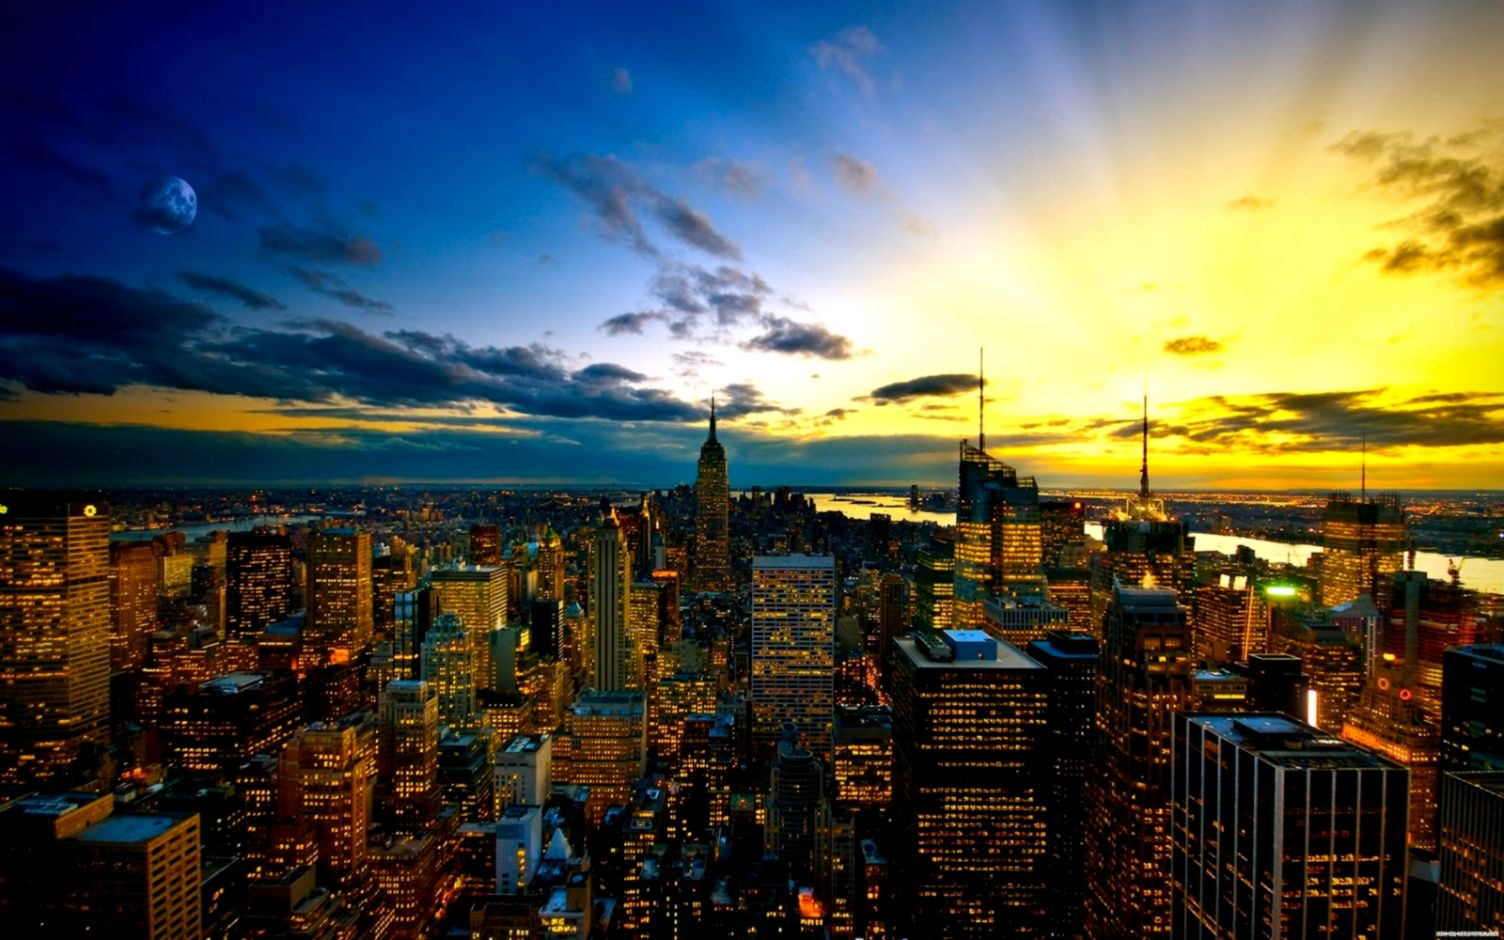 Sunset City Skyline Hd Wallpaper Desktop Wallpapers Just Do It